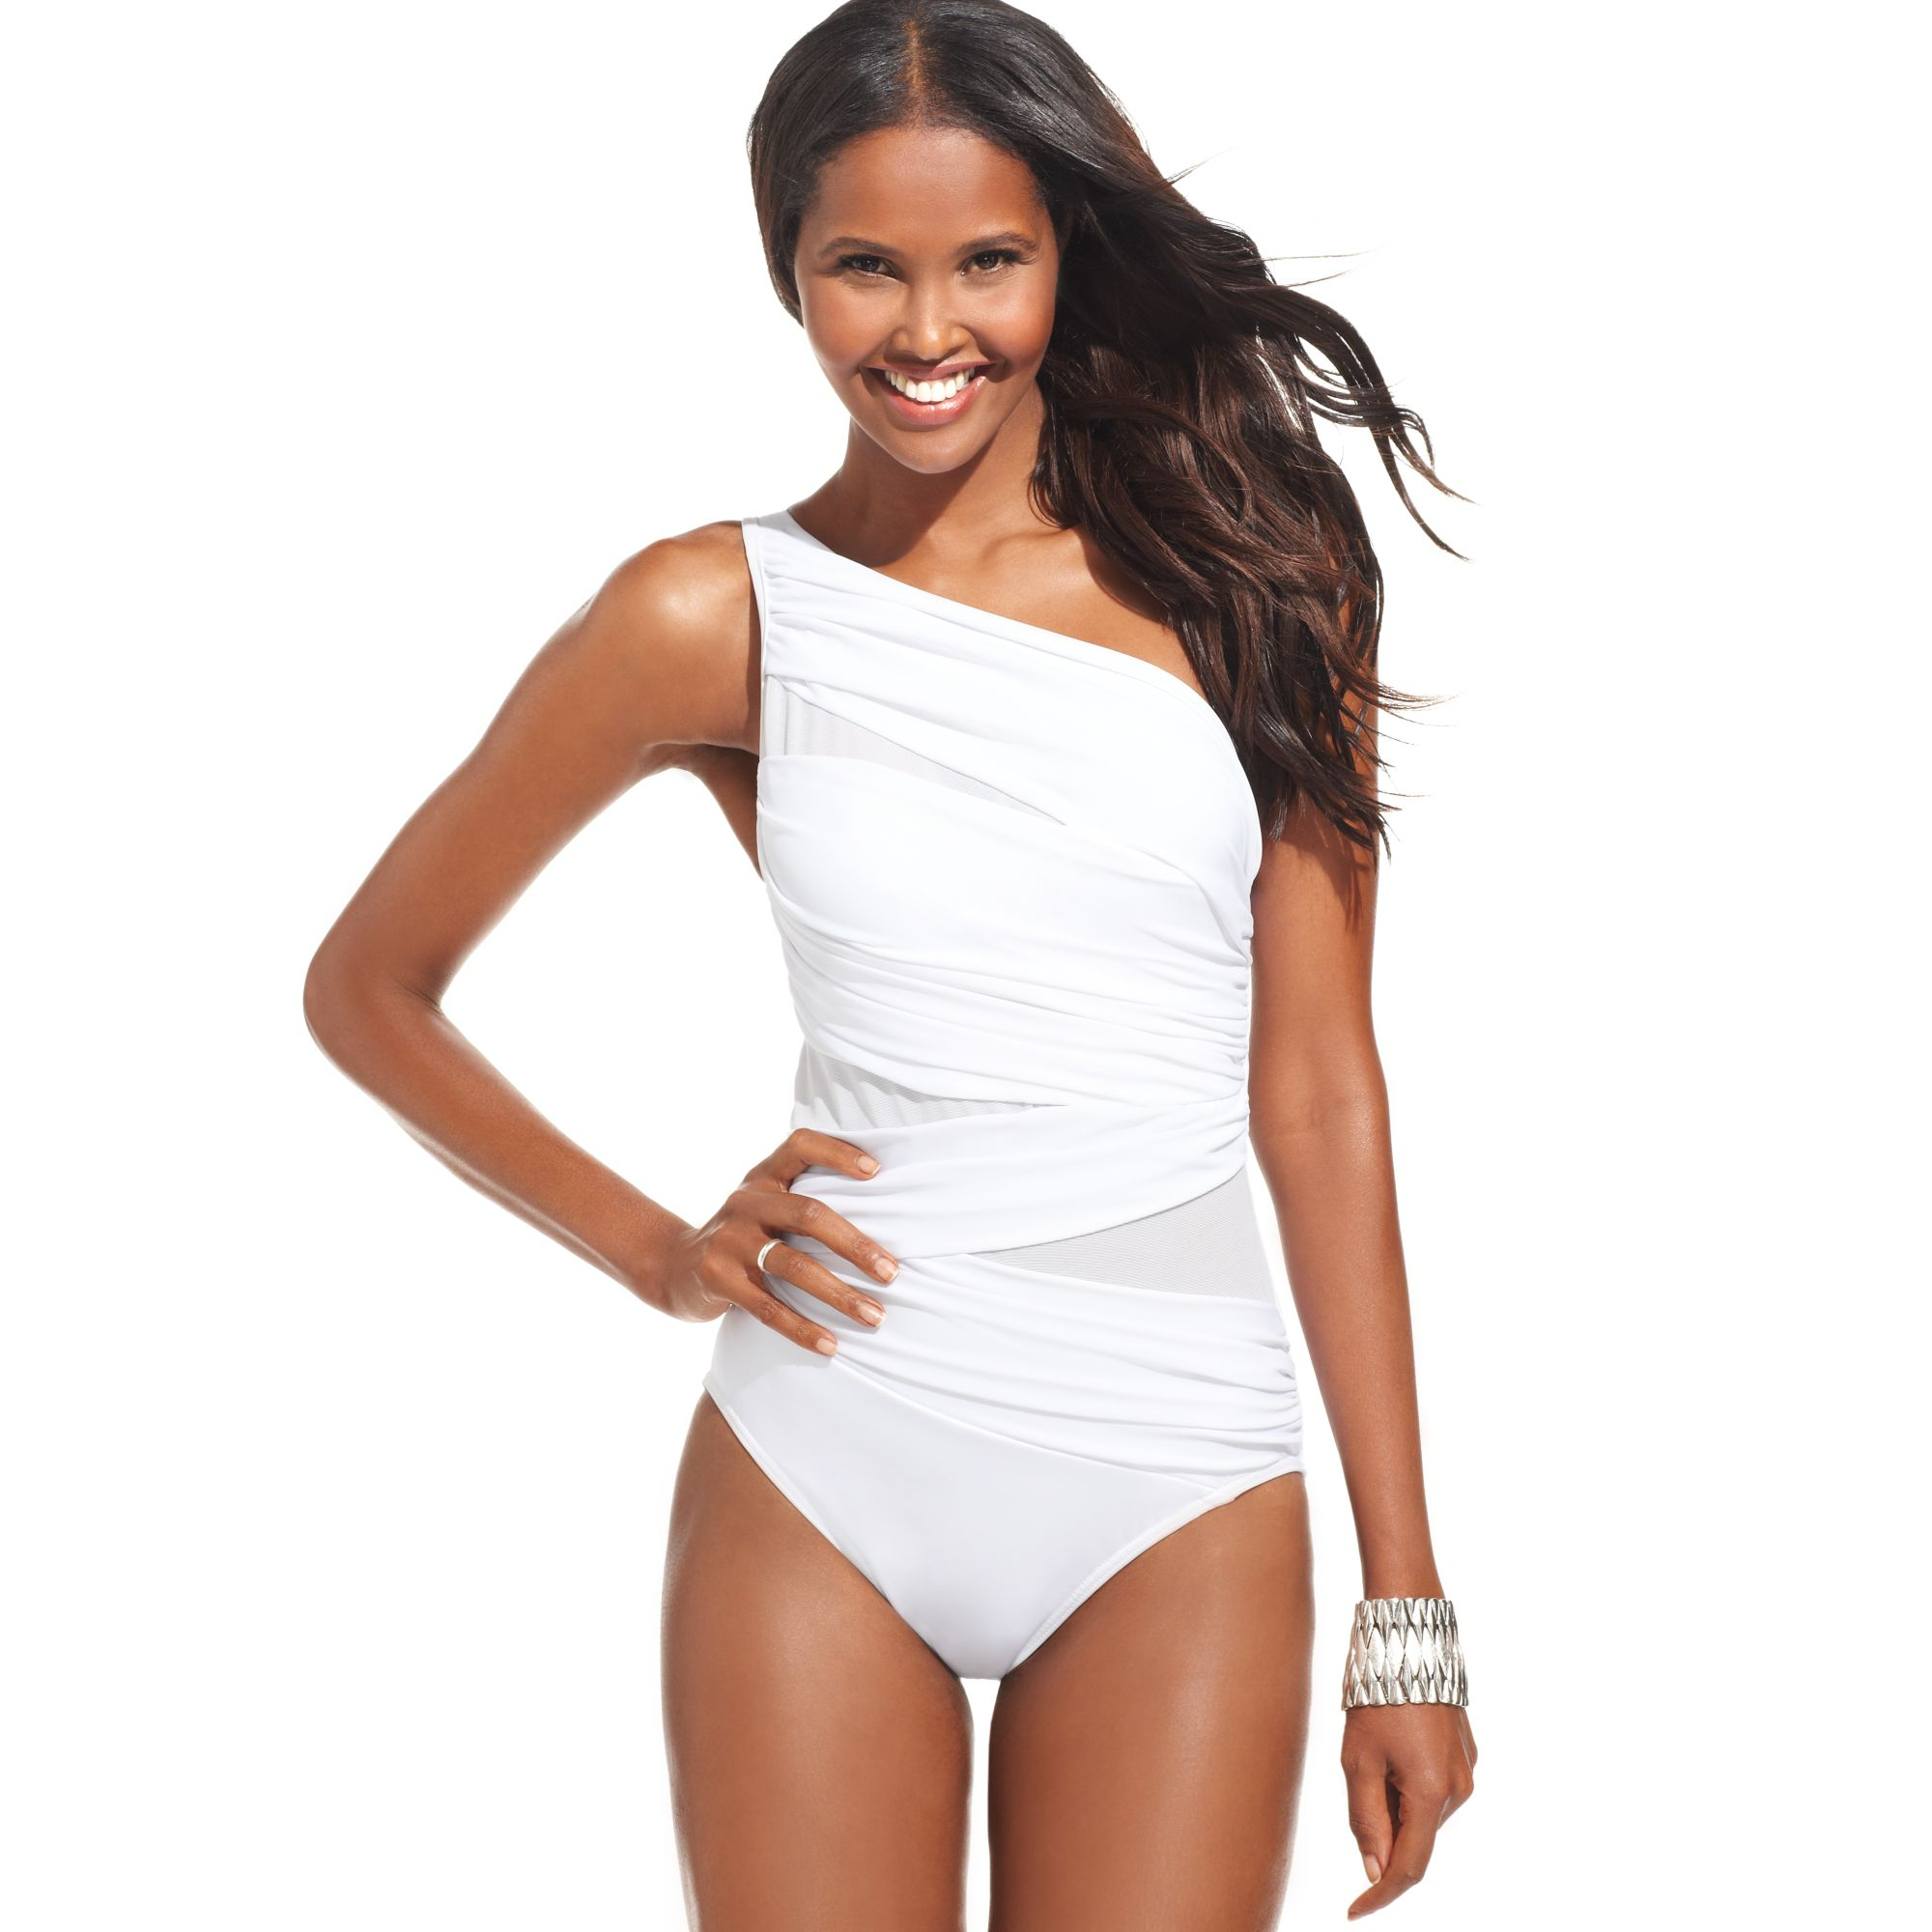 Swimwear and Swimsuits for Women From one piece suits to every style of two-piece swimwear, shops hundreds of styles and brands to find just your style. Real customer reviews, fitter's comments and detailed product info make shopping easy.